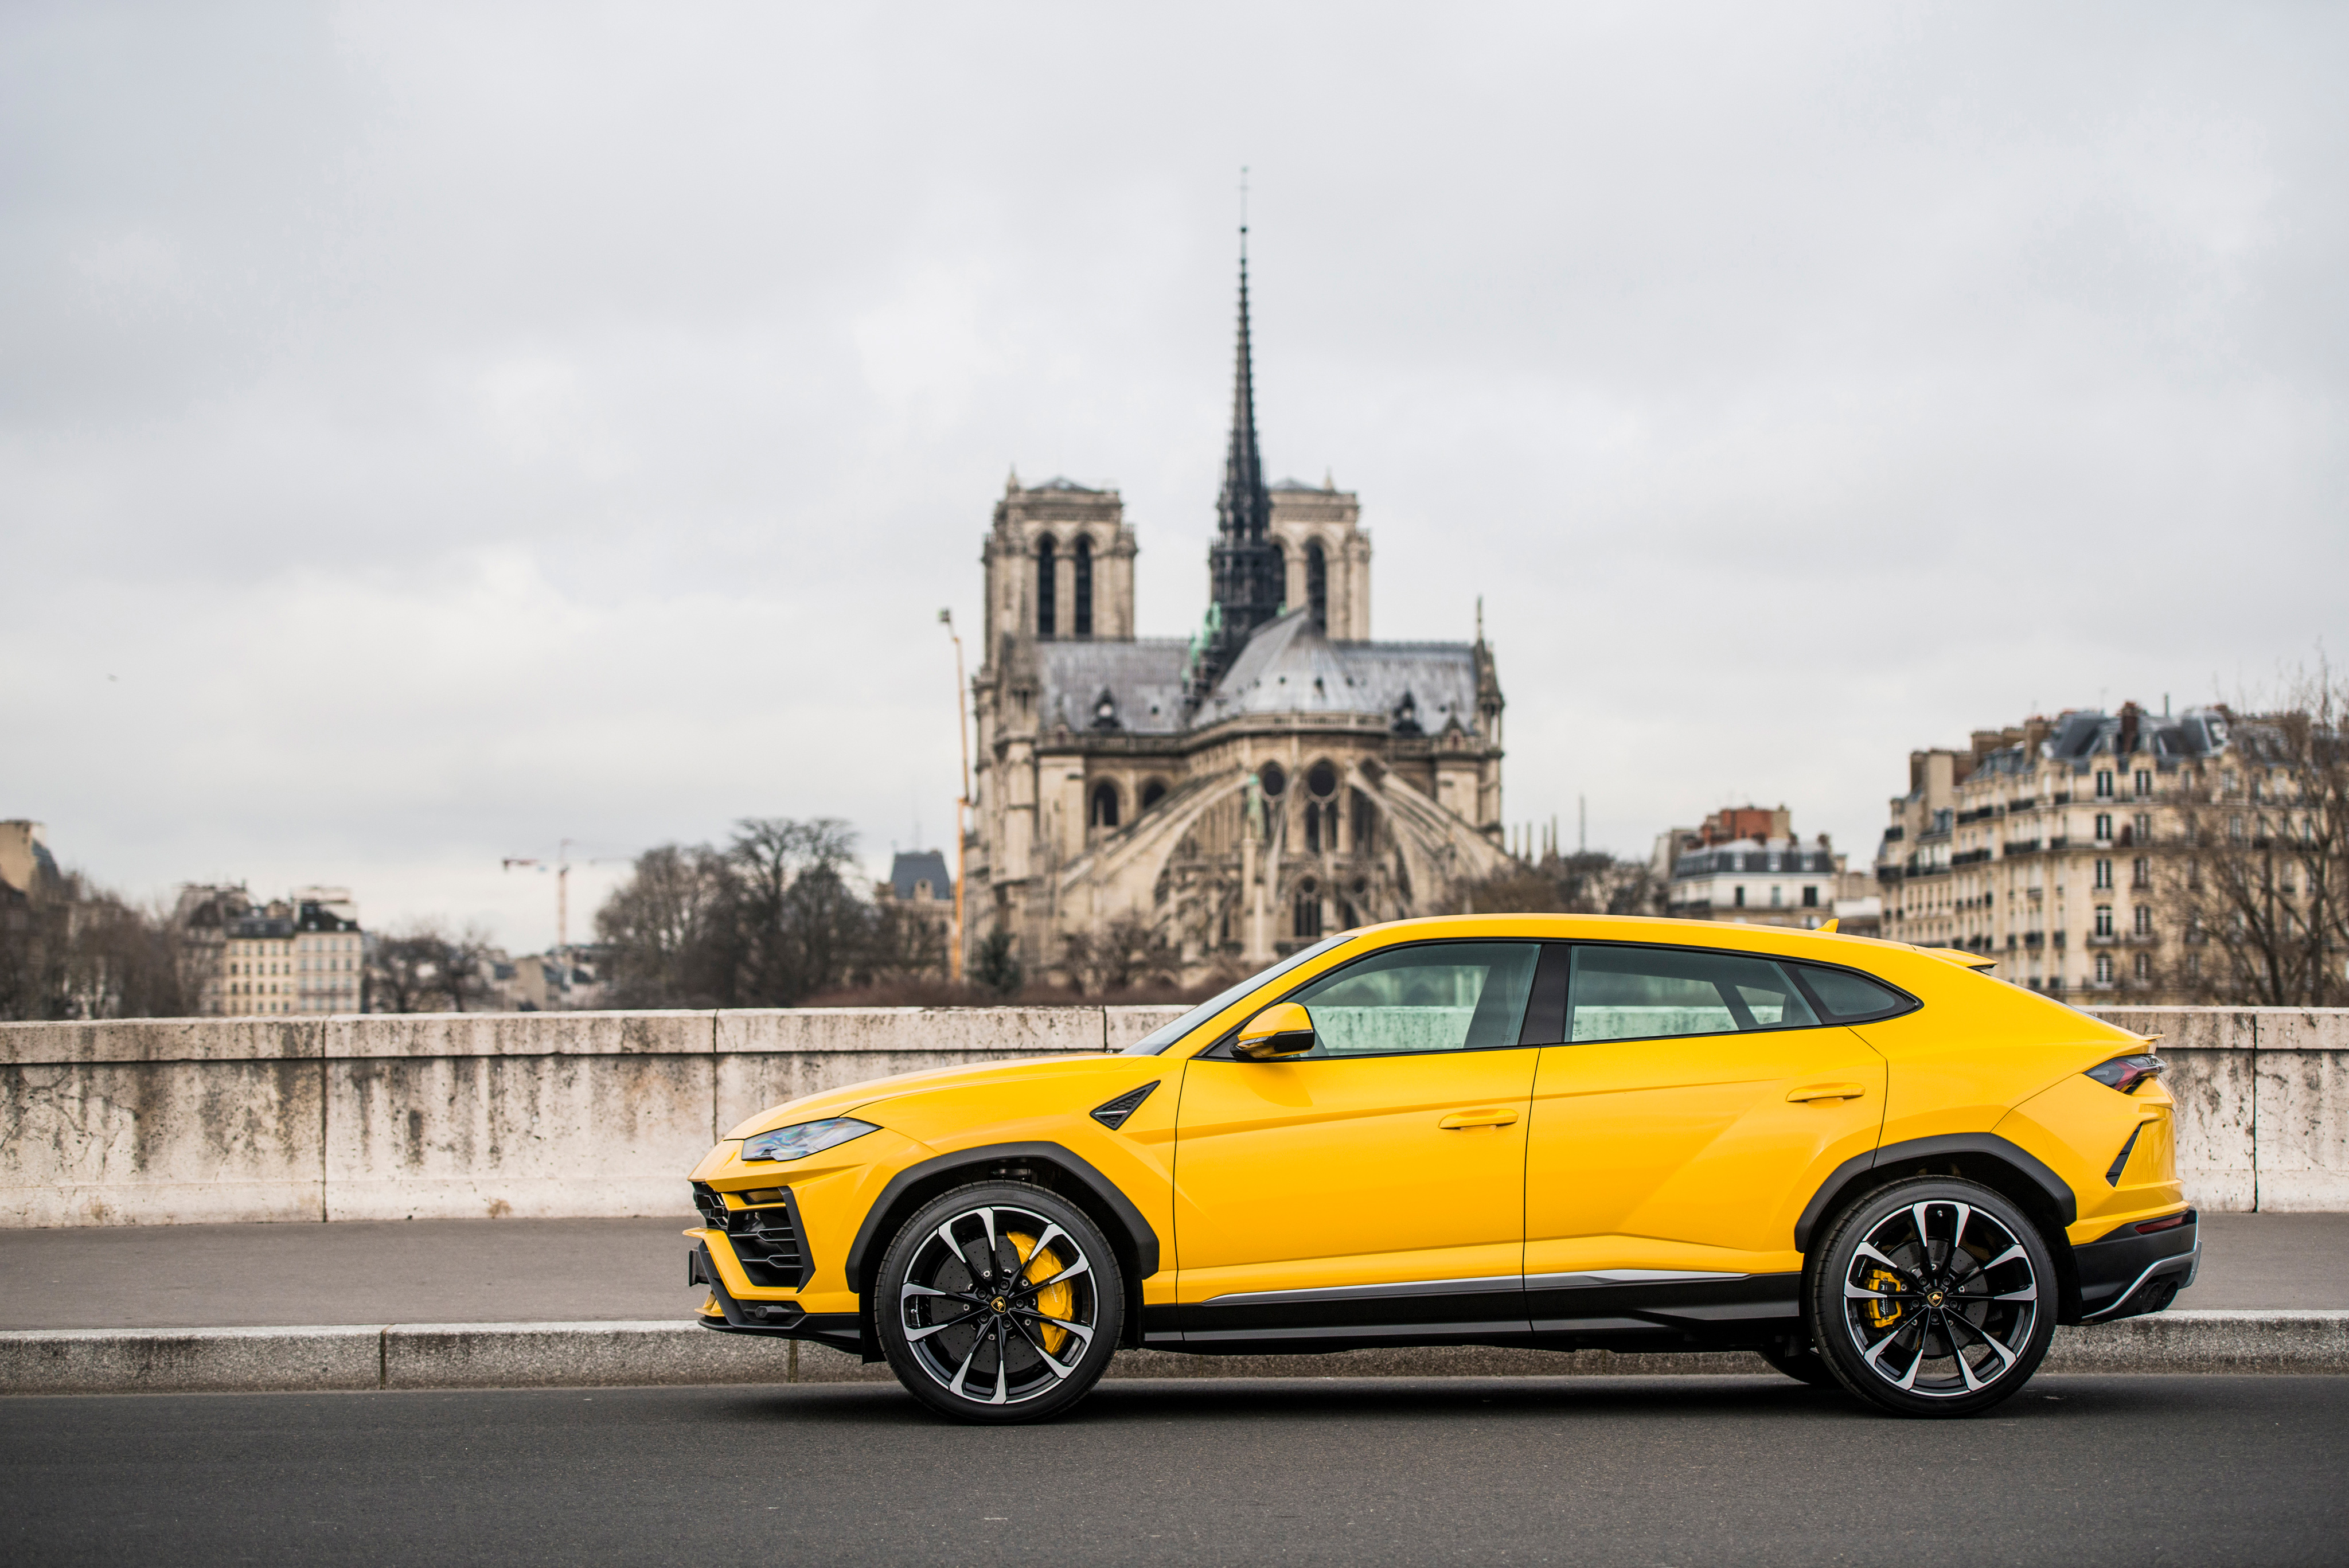 2018 lamborghini urus side view 4k hd cars 4k wallpapers images backgrounds photos and pictures - Car side view wallpaper ...